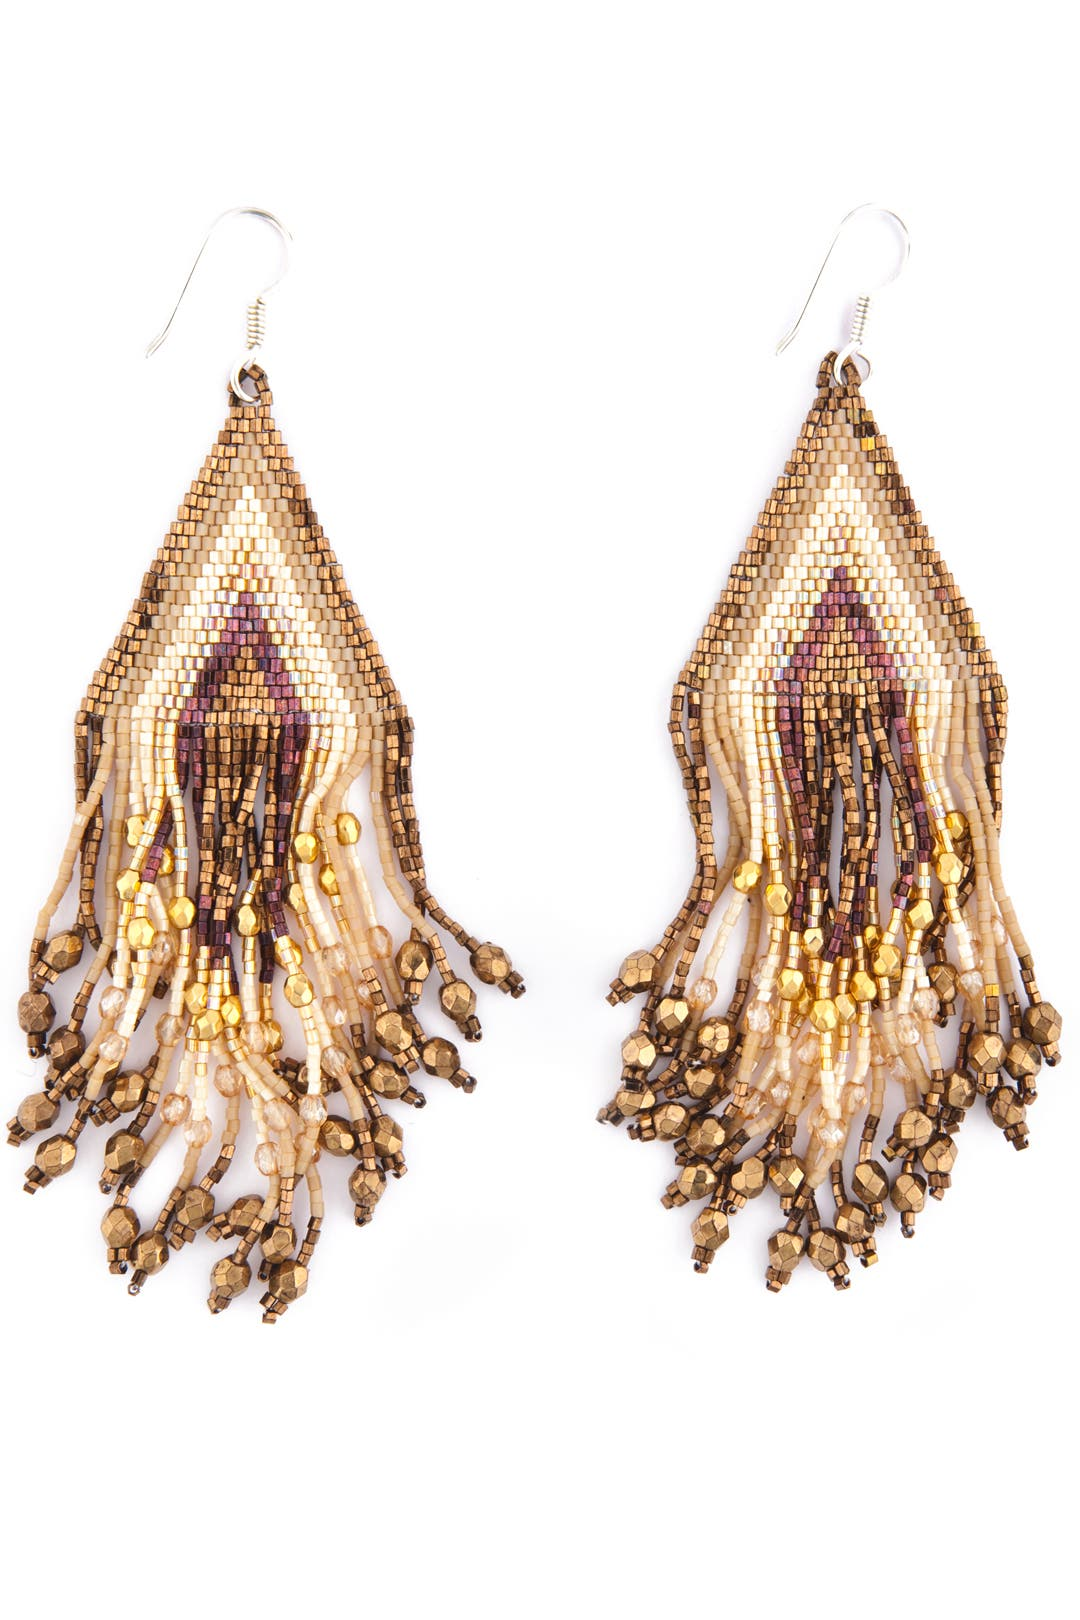 Hippie Fringe Earrings by Aikutzi